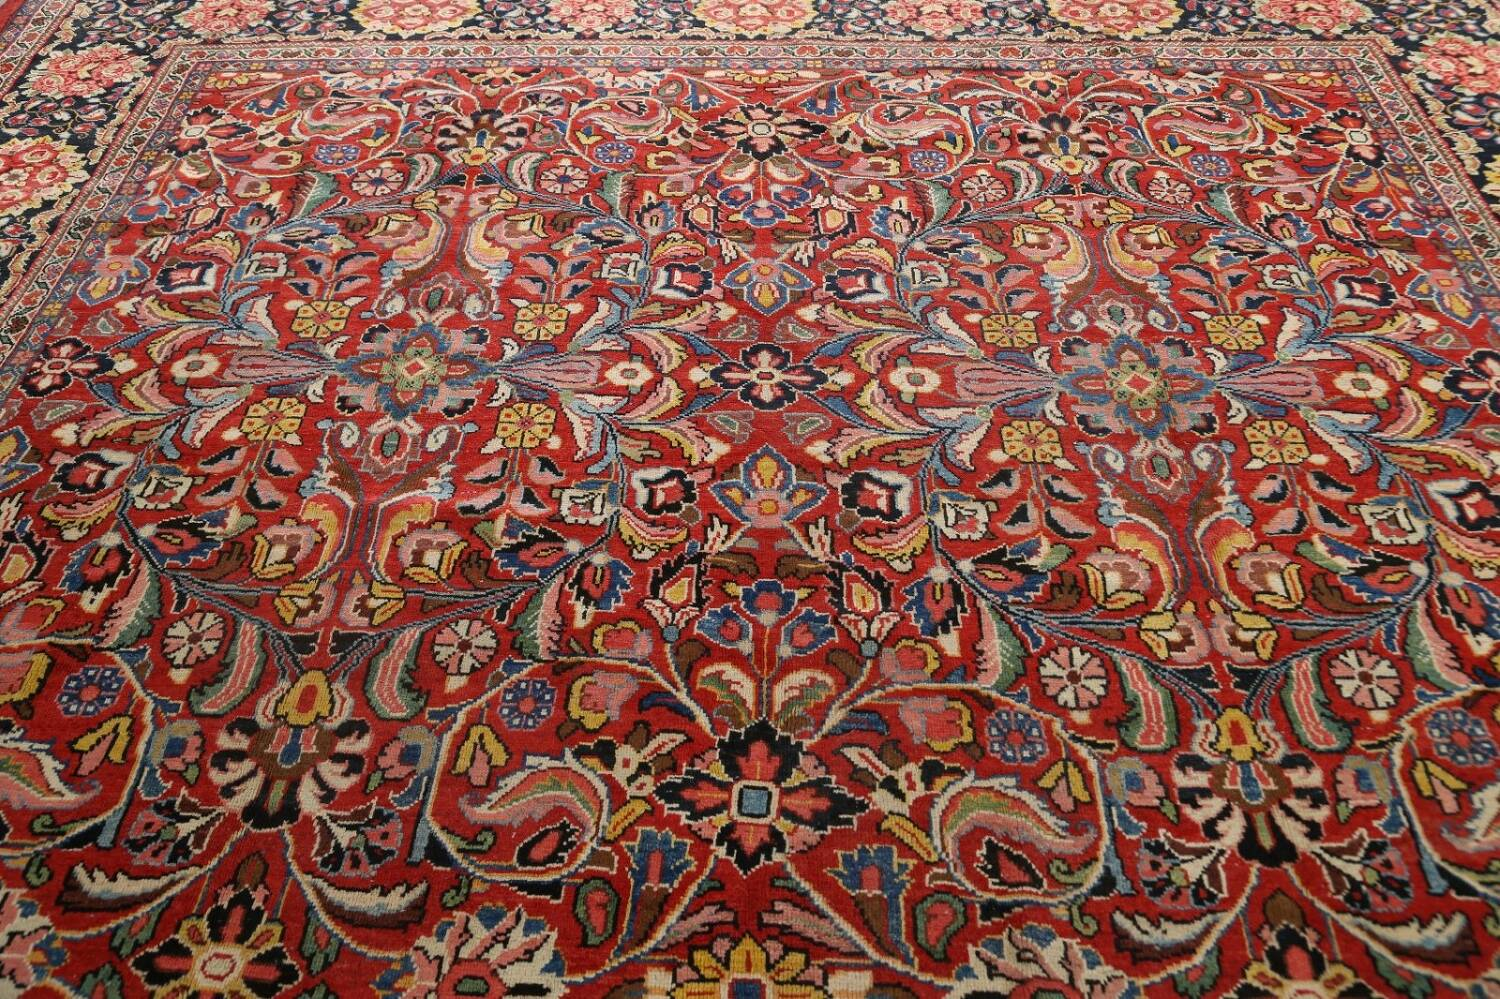 Antique Vegetable Dye Sultanabad Persian Area Rug 10x14 image 17